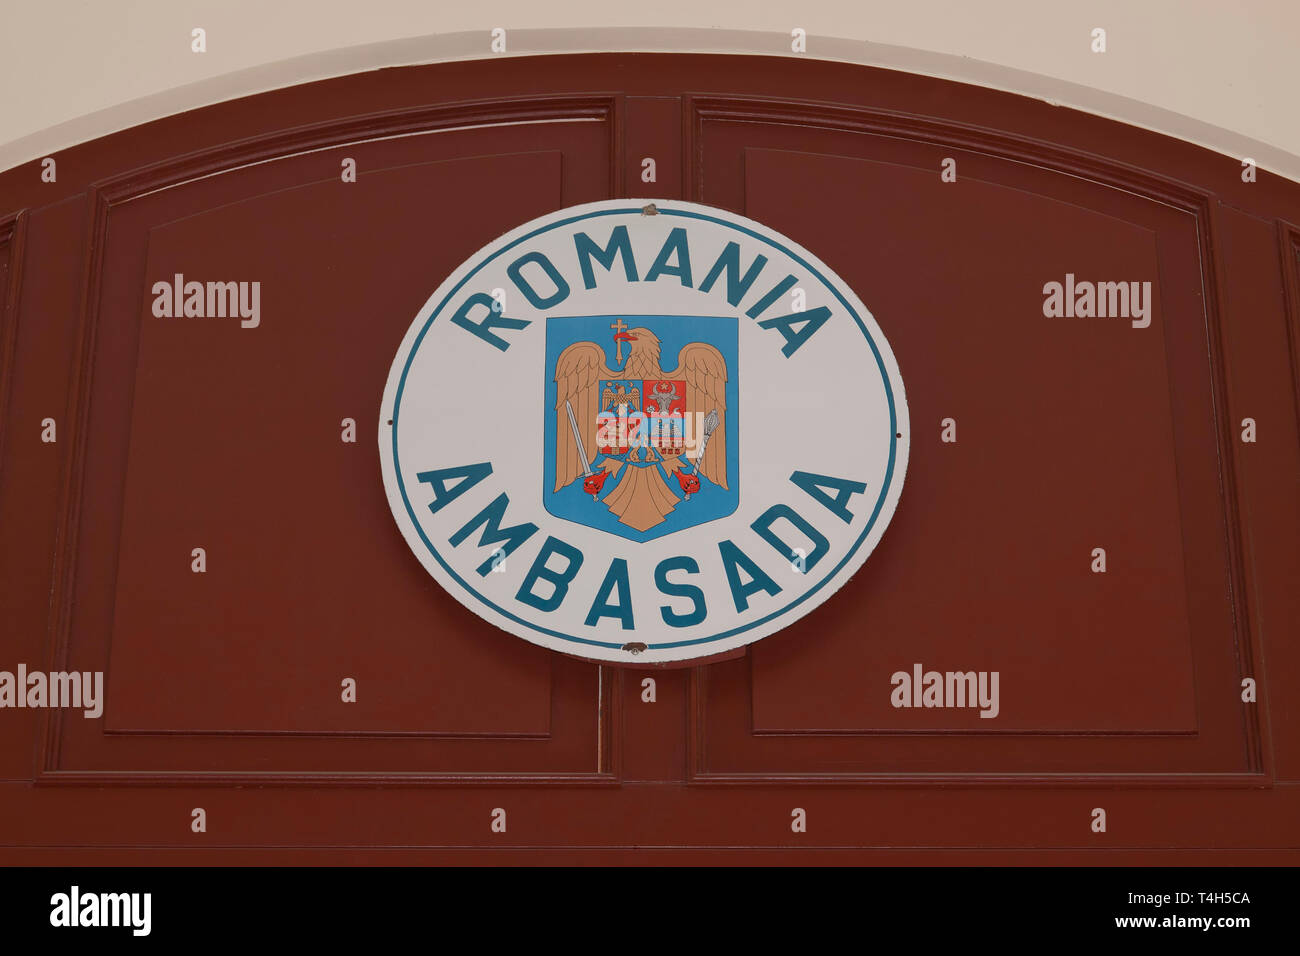 Coat of arms at the entrance of the embassy Romania, Berlin - Stock Image